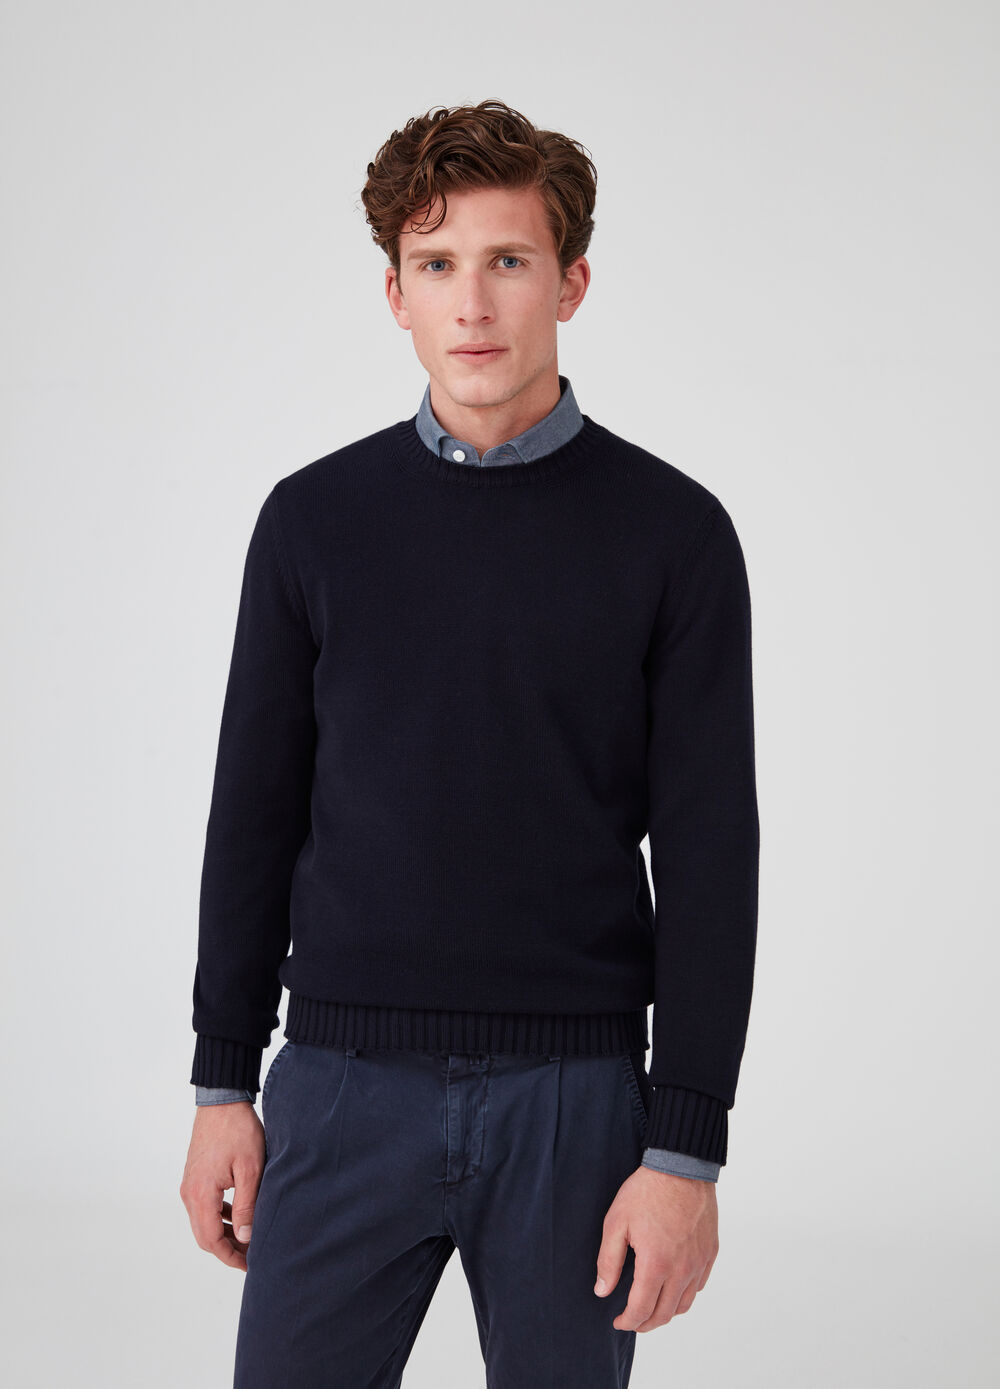 Rumford knitted 100% cotton pullover